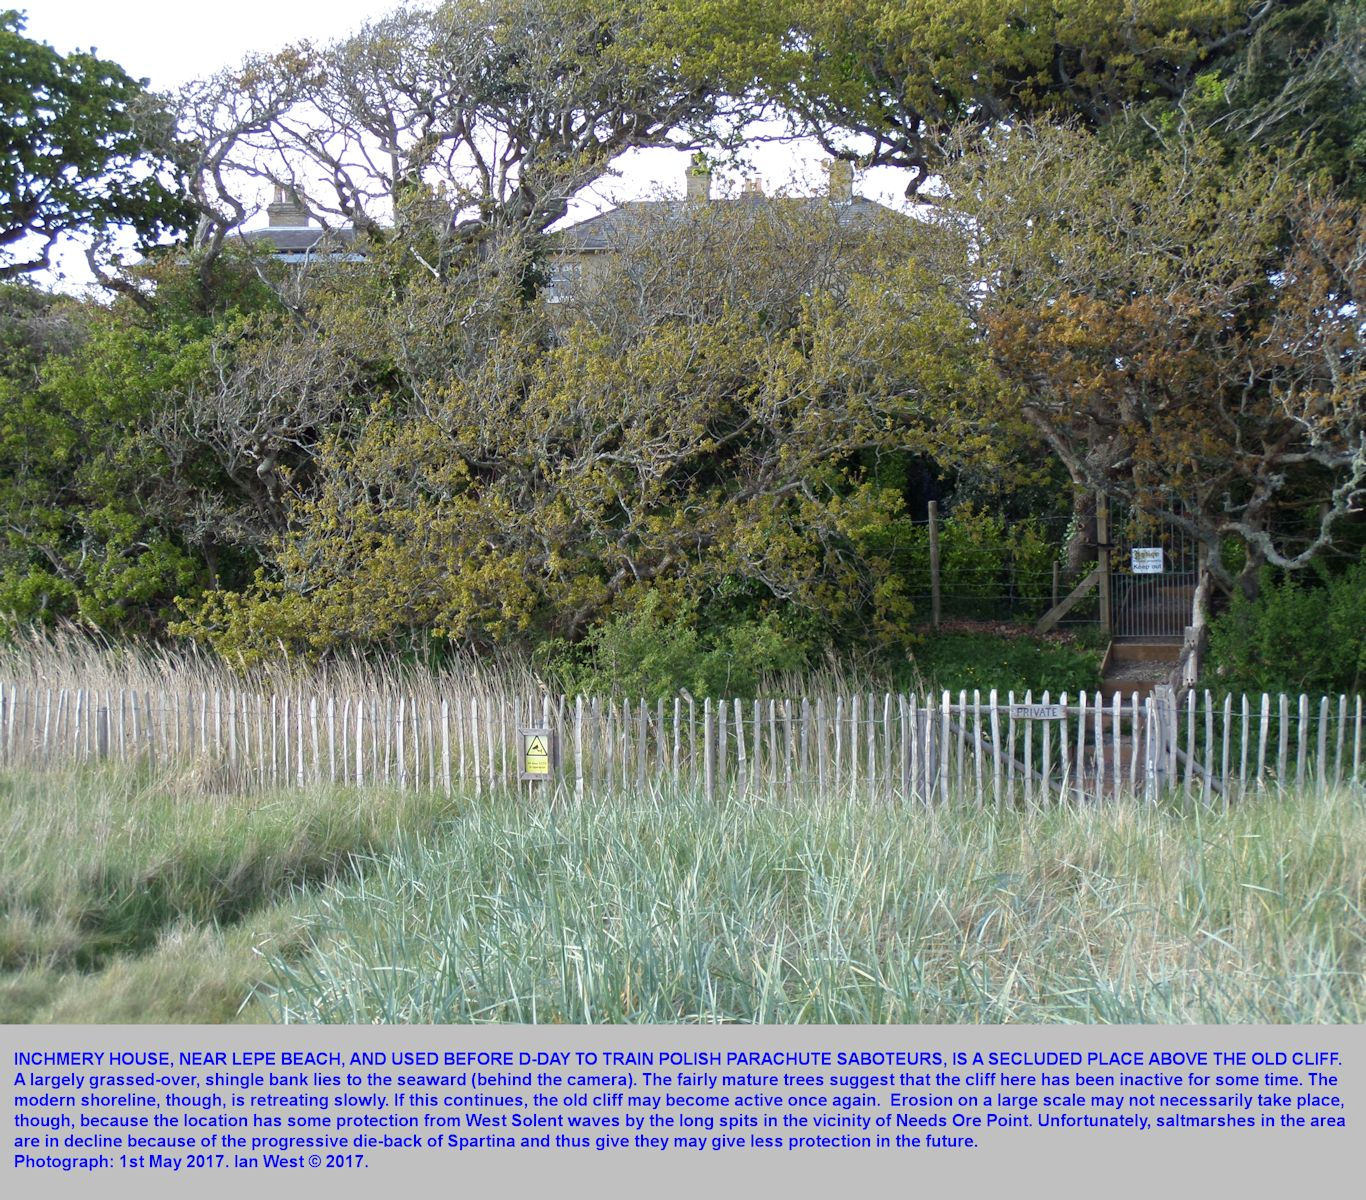 Inchmery House, viewed from the small shingle bank, and looking landwards toward the old cliff, near Lepe Beach, Hampshire